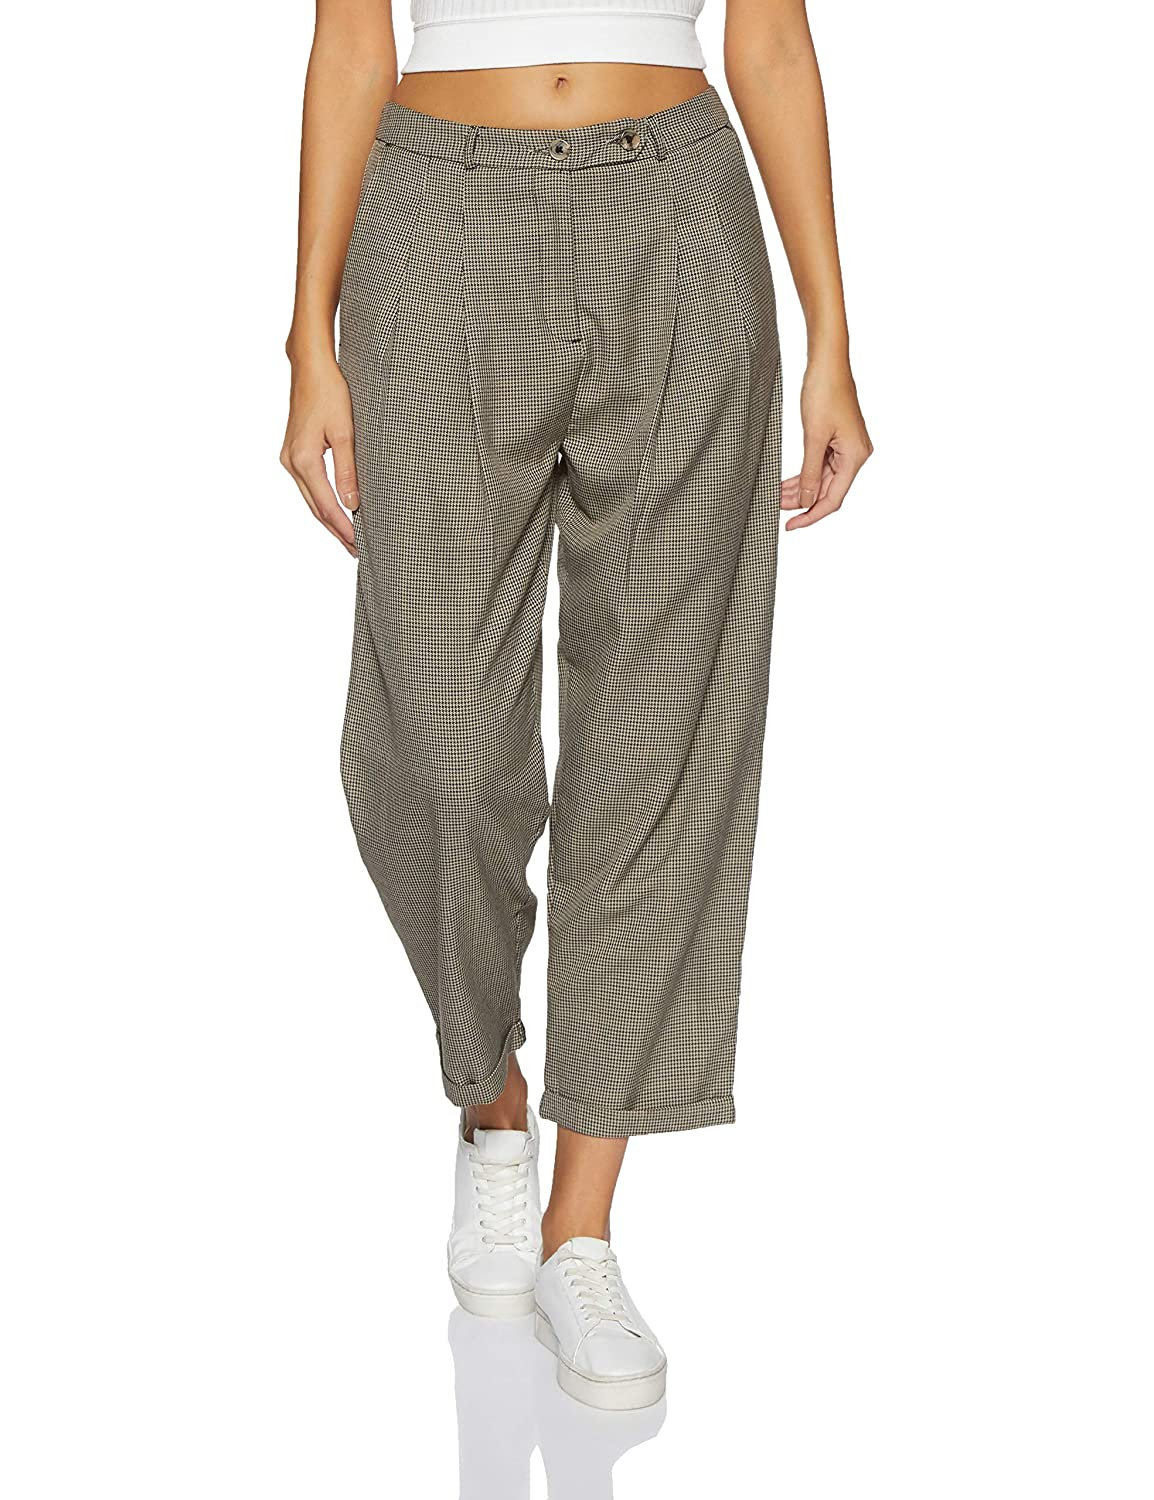 UCB Women's Relaxed Sports Trousers